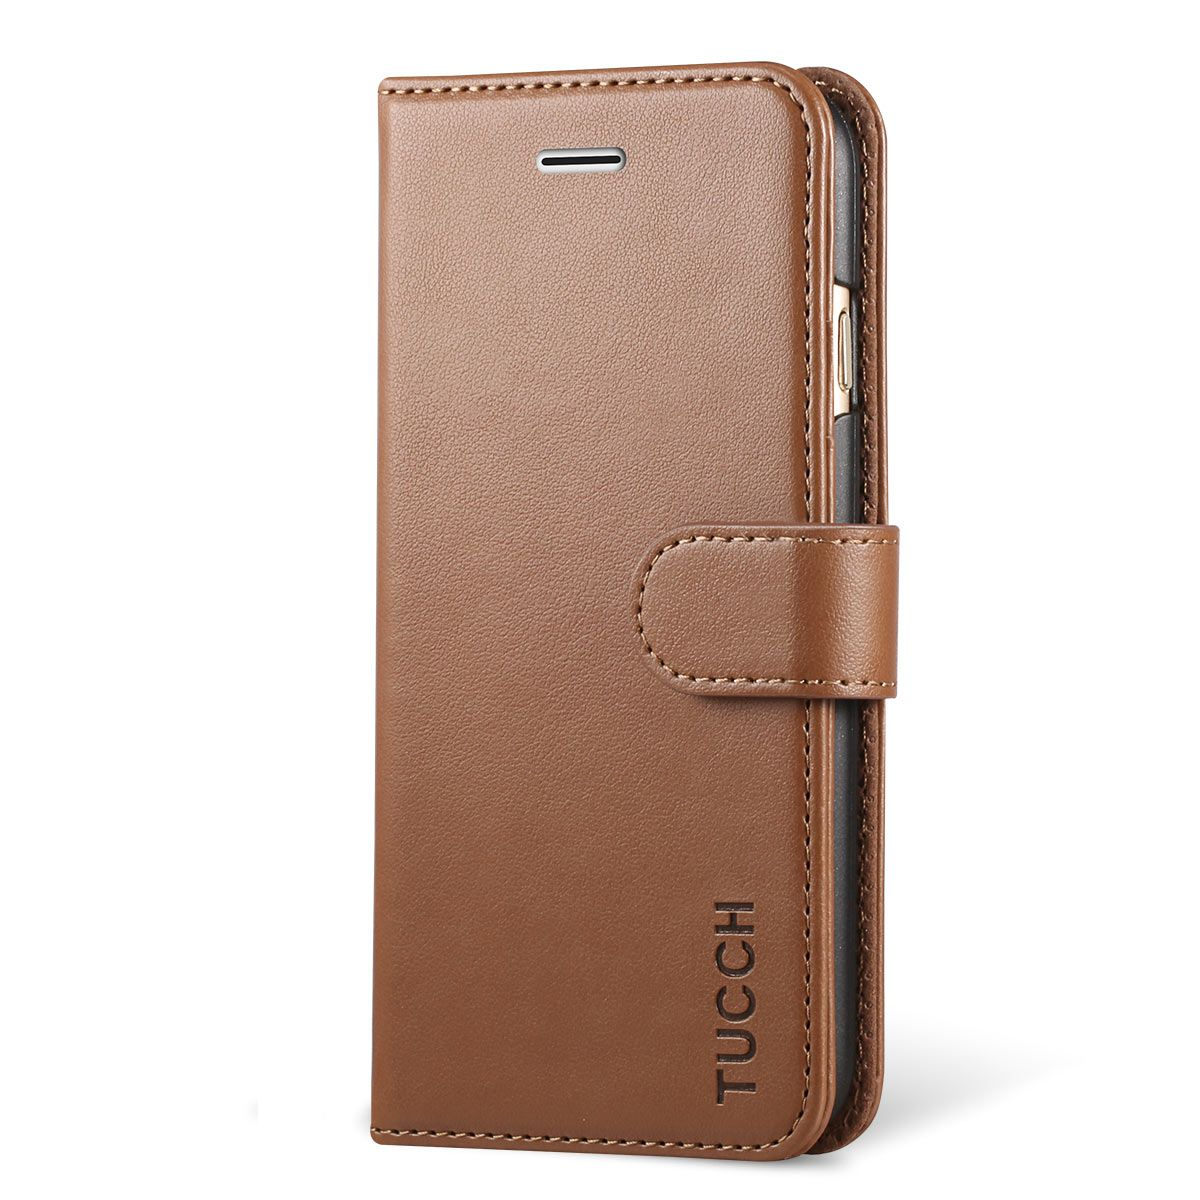 timeless design e05ca c3633 TUCCH iPhone 7 Wallet Case, iPhone 8 Case, Stand Holder and Magnetic  Closure, Brown